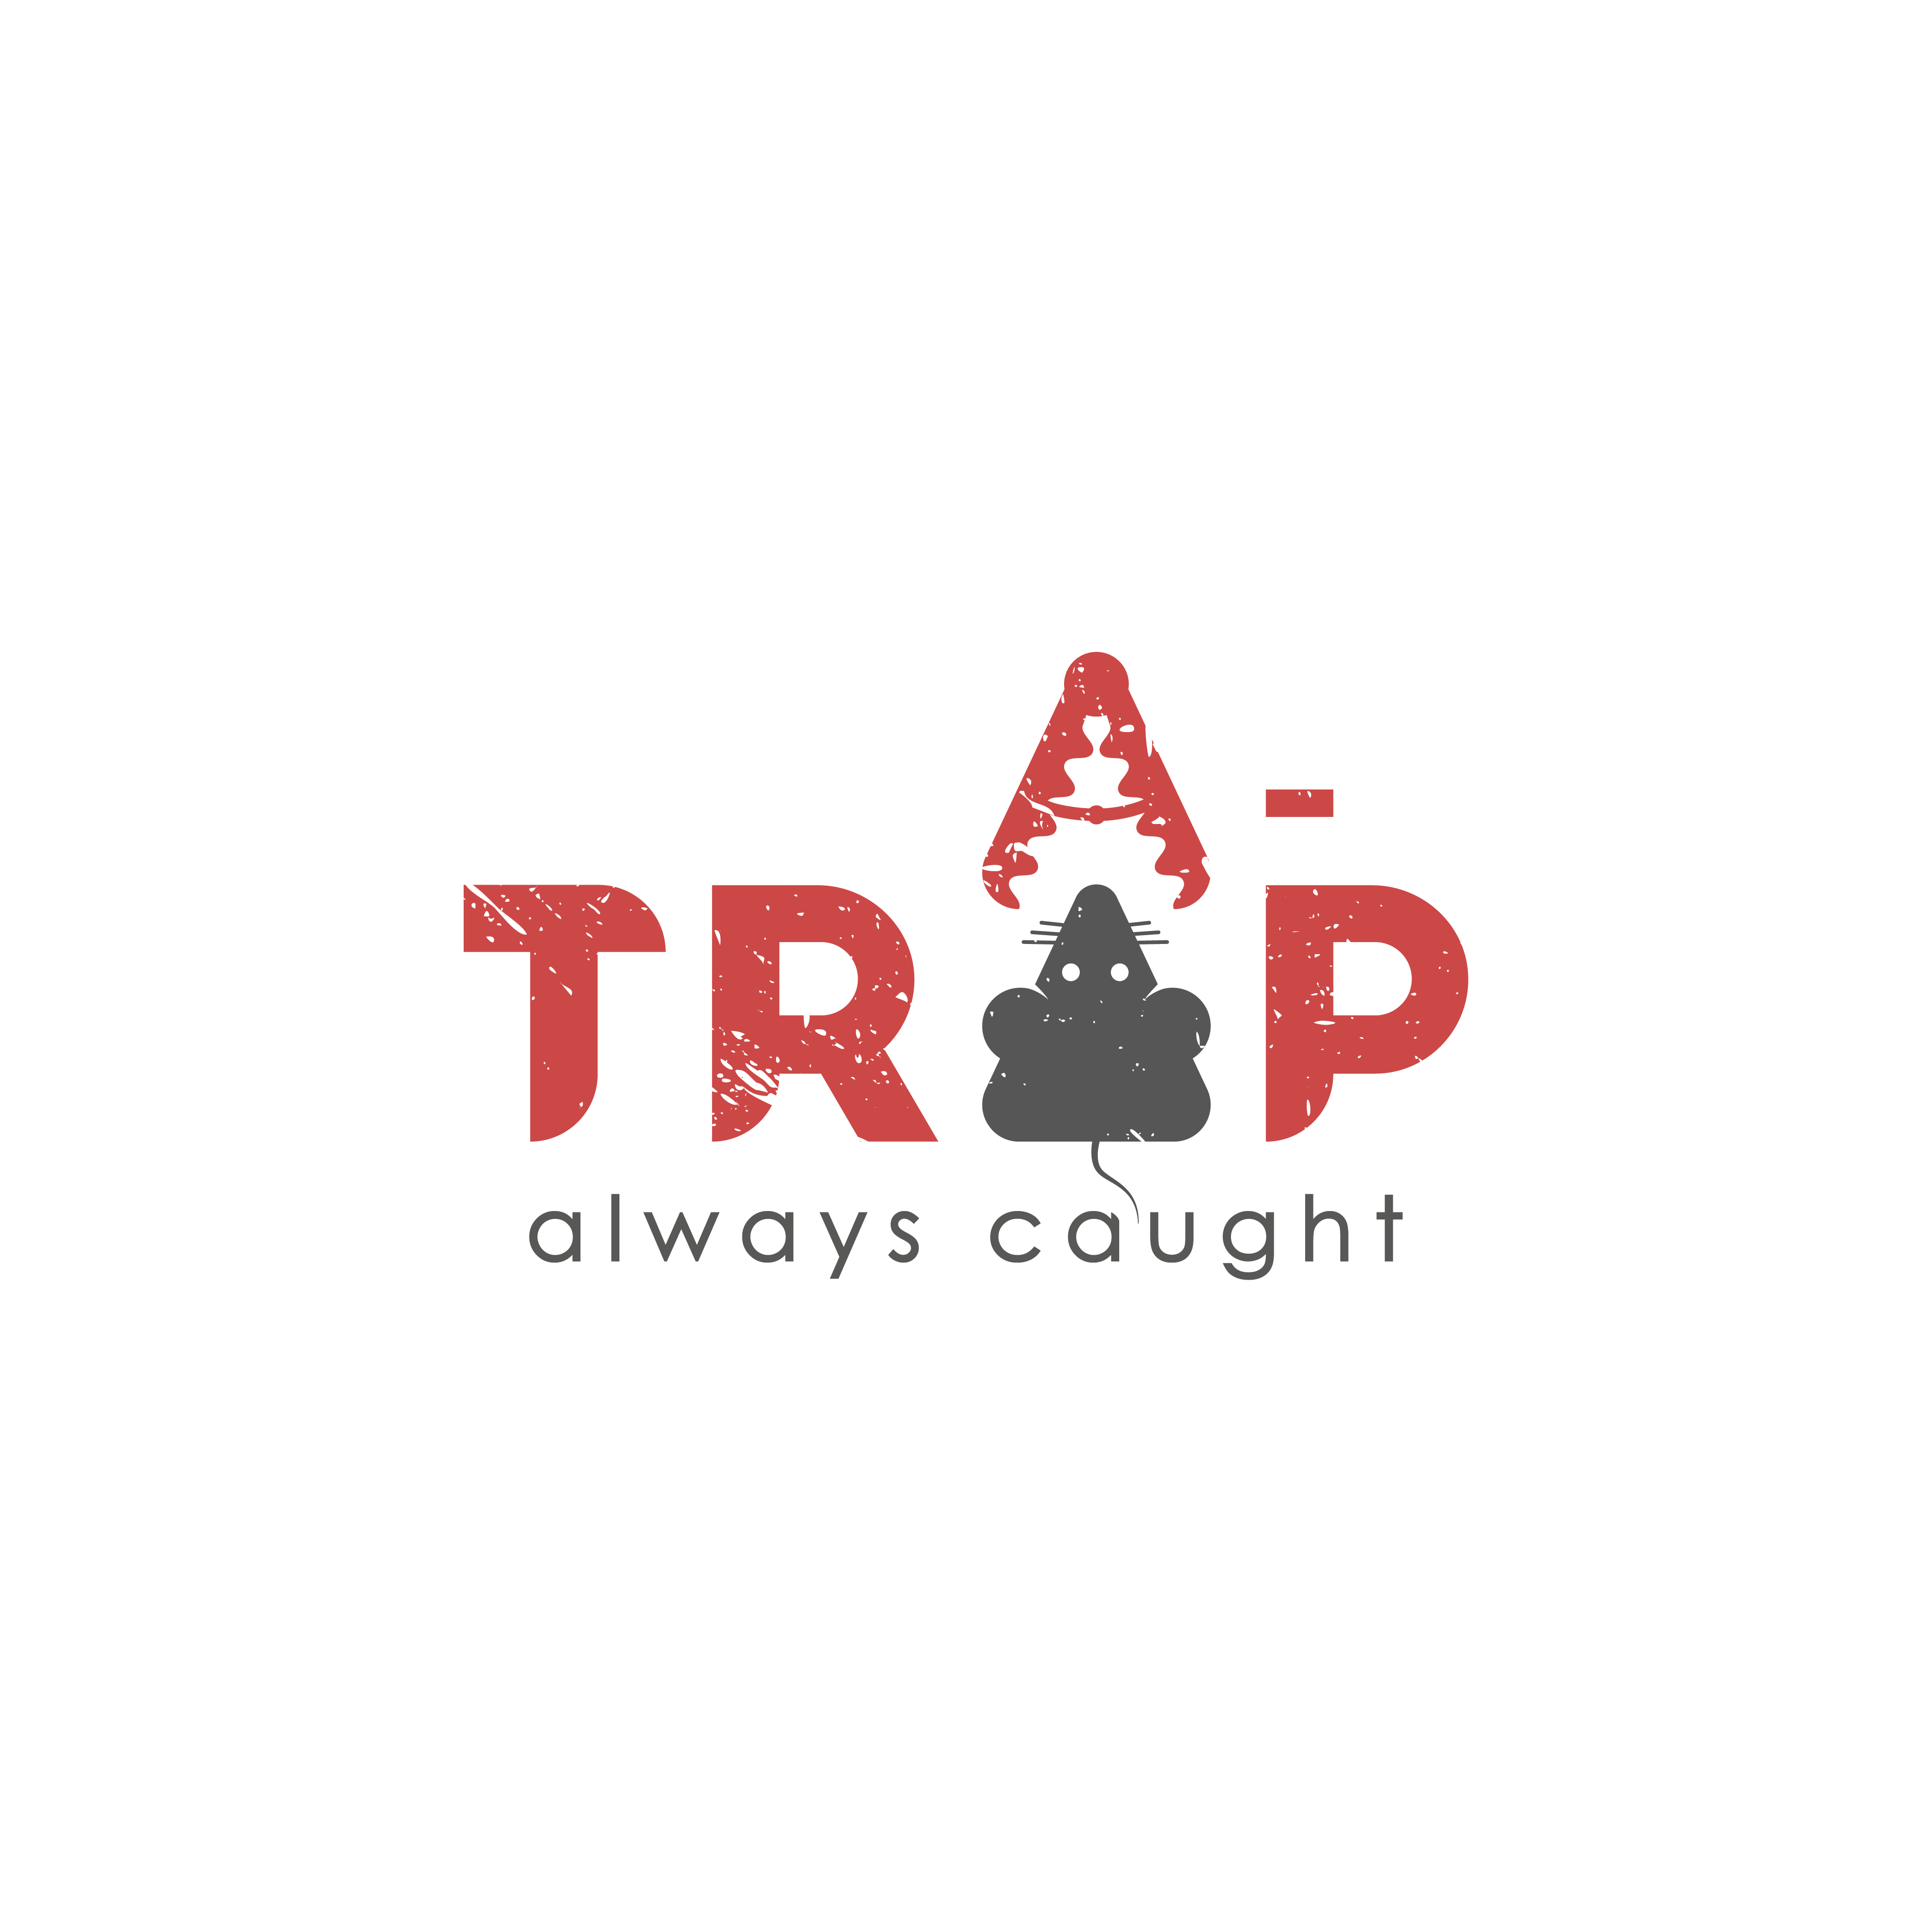 Create a strong logo for my rat trap company (w/o cat)